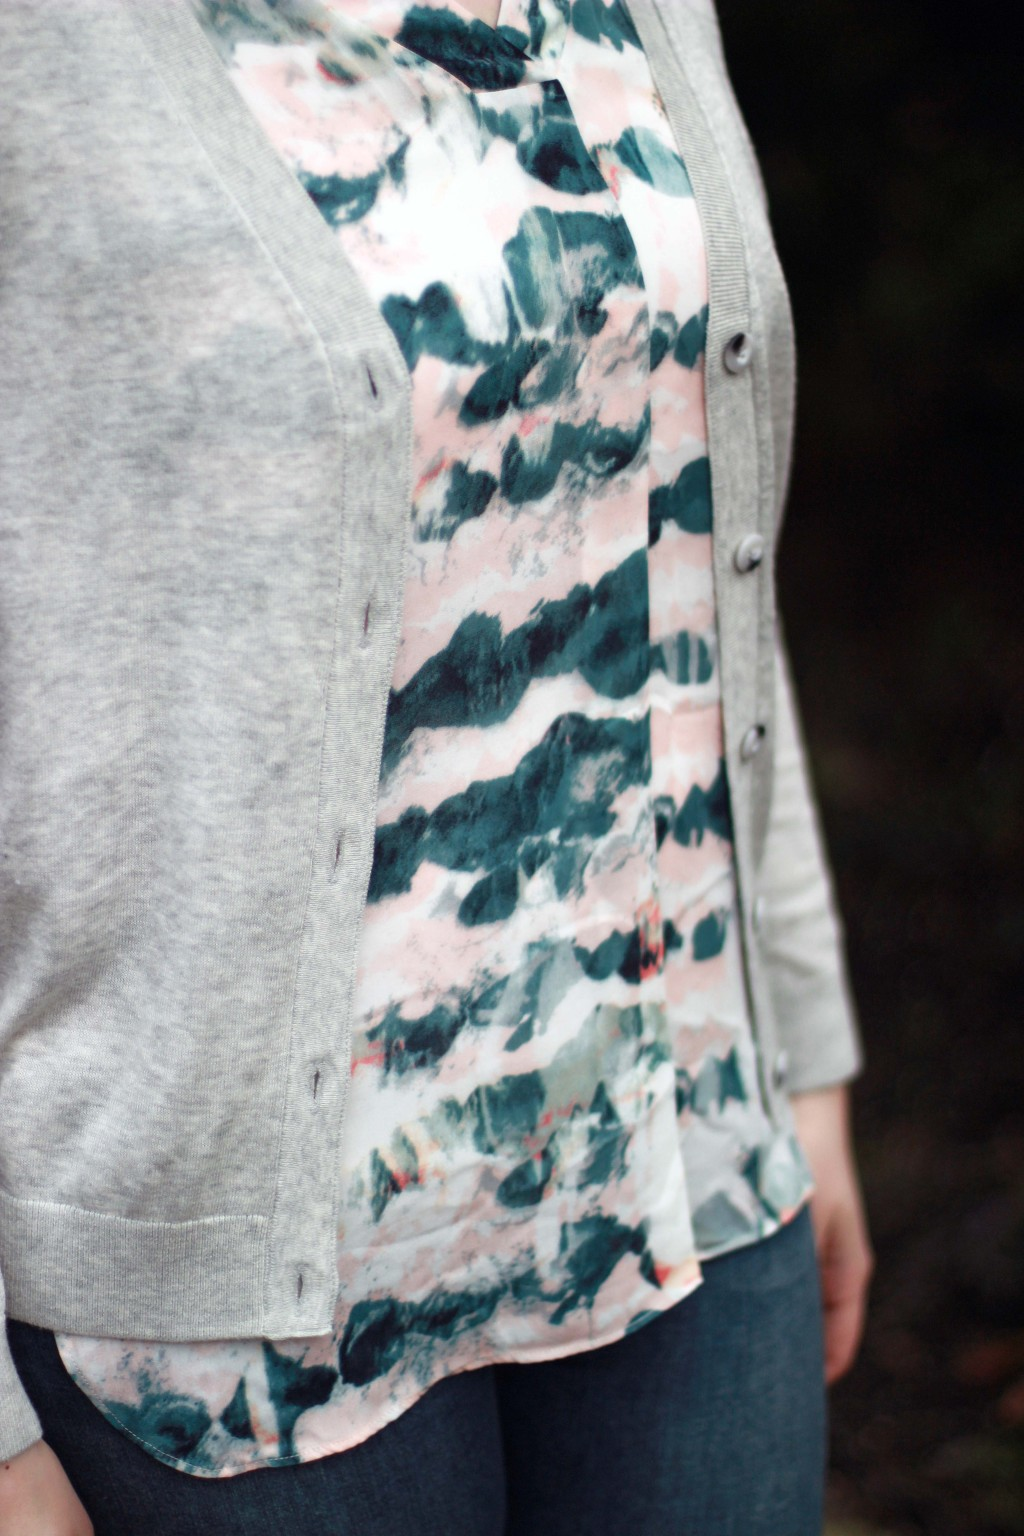 13 - gray sweater and watercolor blouse detail